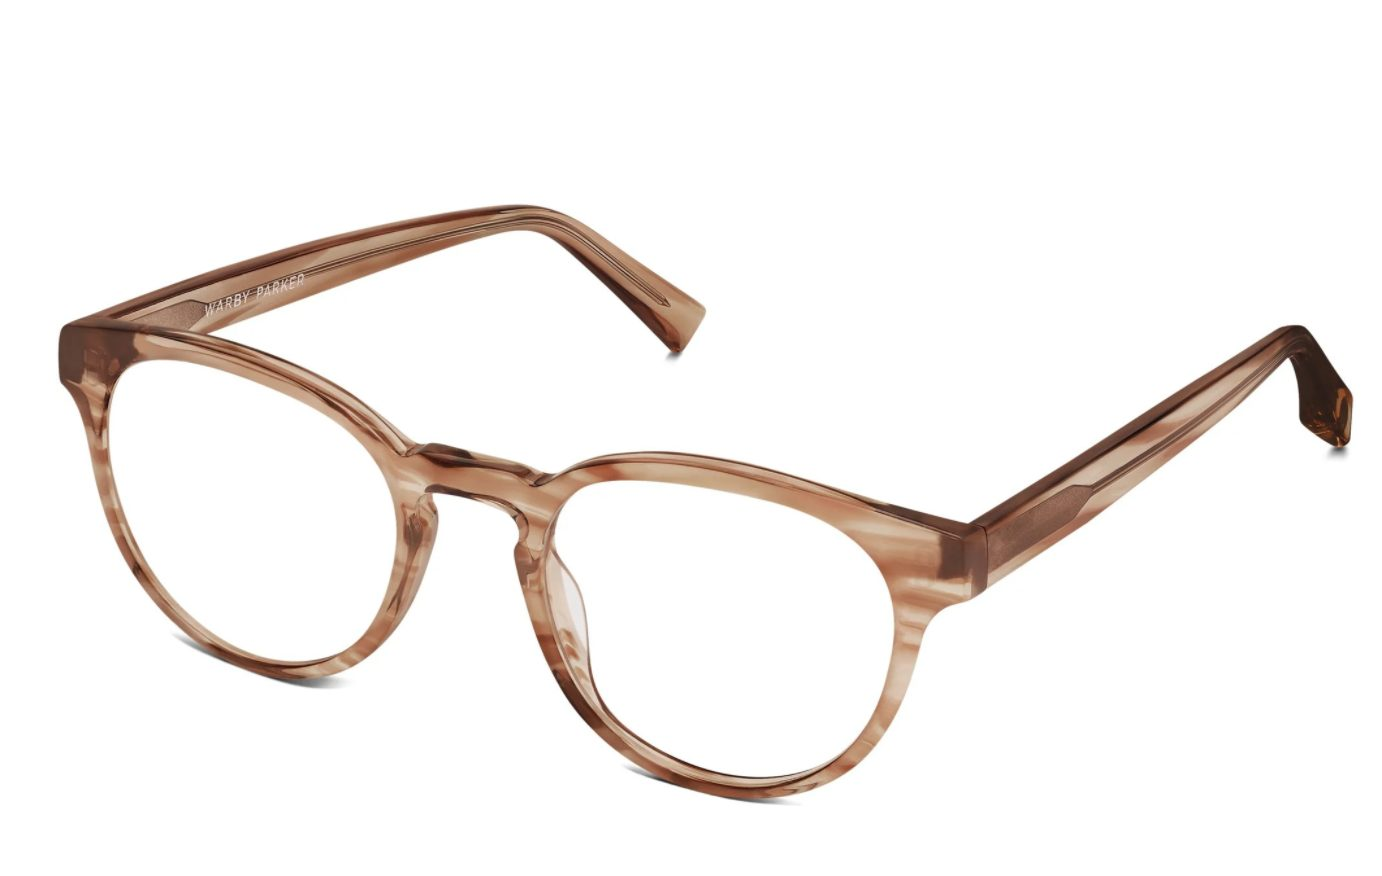 gift guide for him, christmas gifts for him, gifts for the man who has everything, gifts for men, gifts for dad, gifts for husband, gift guide for husband, olivia rink husband, olivia rink fiance, gifts for boyfriend, 2020 boyfriend christmas gifts, olivia rink conner, warby parker glasses